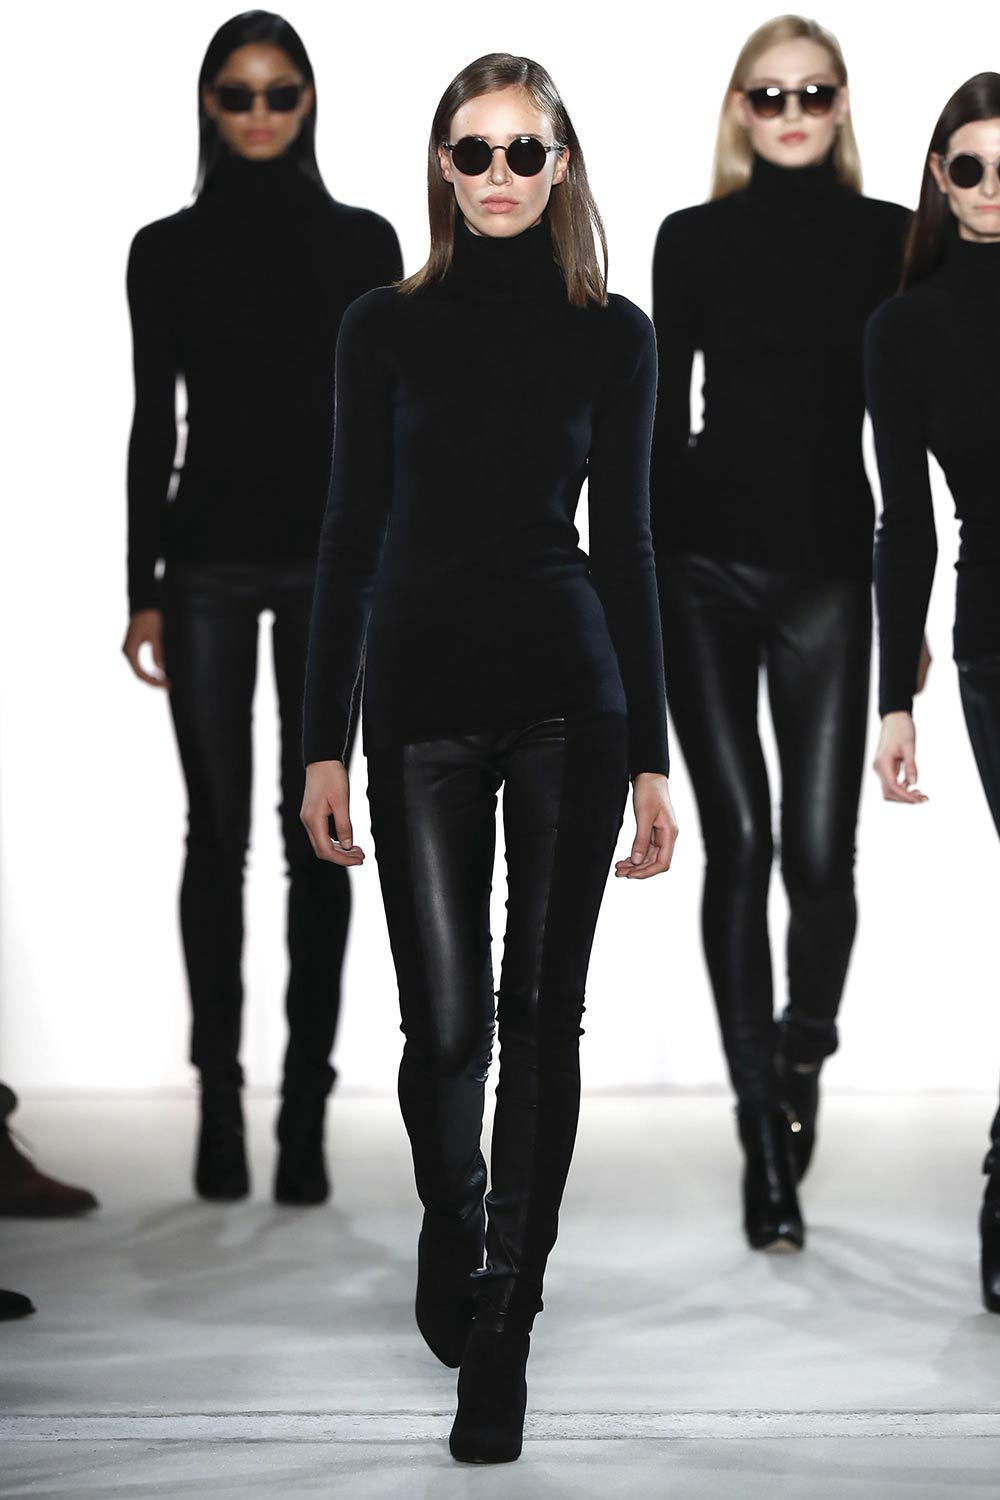 Models walk the runway at the Maisonnoee show